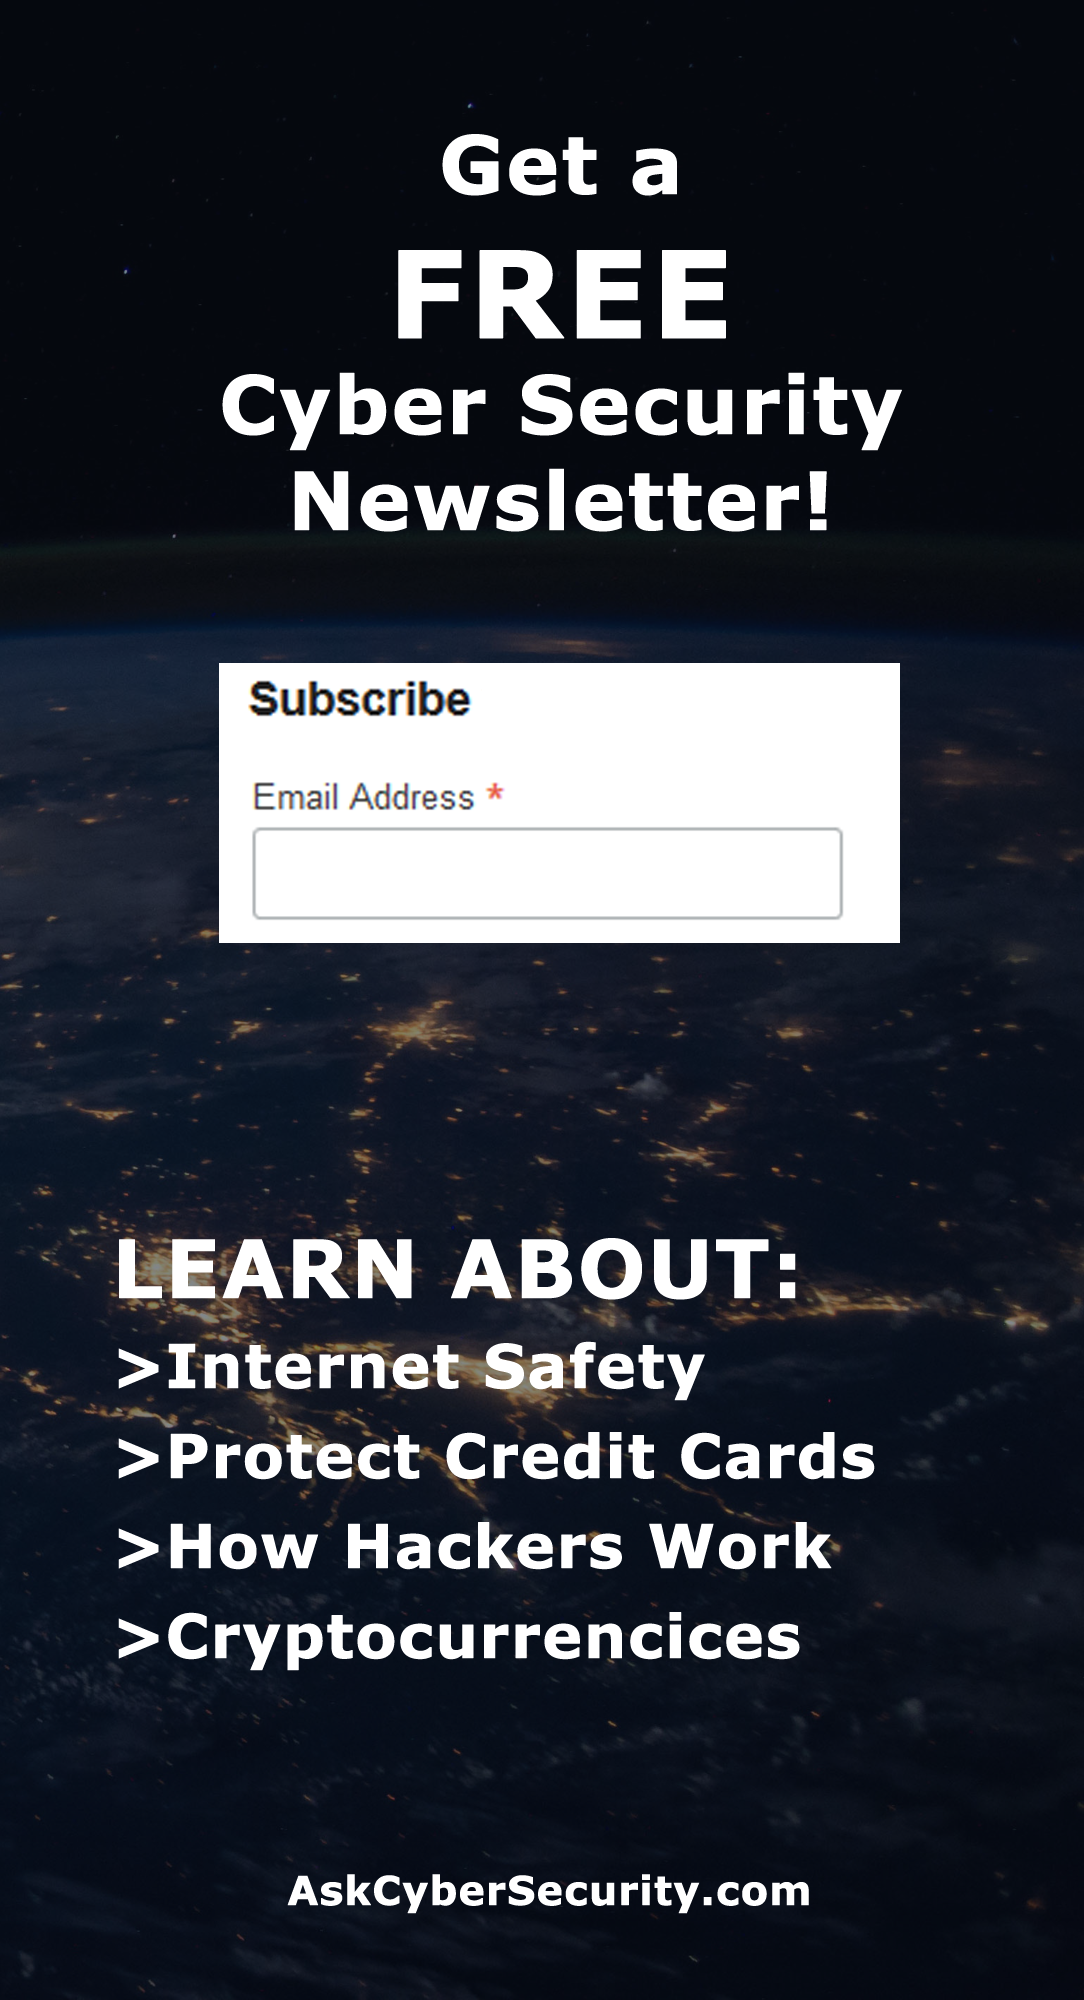 Cyber Security Newsletter Pinterest for business, Cyber